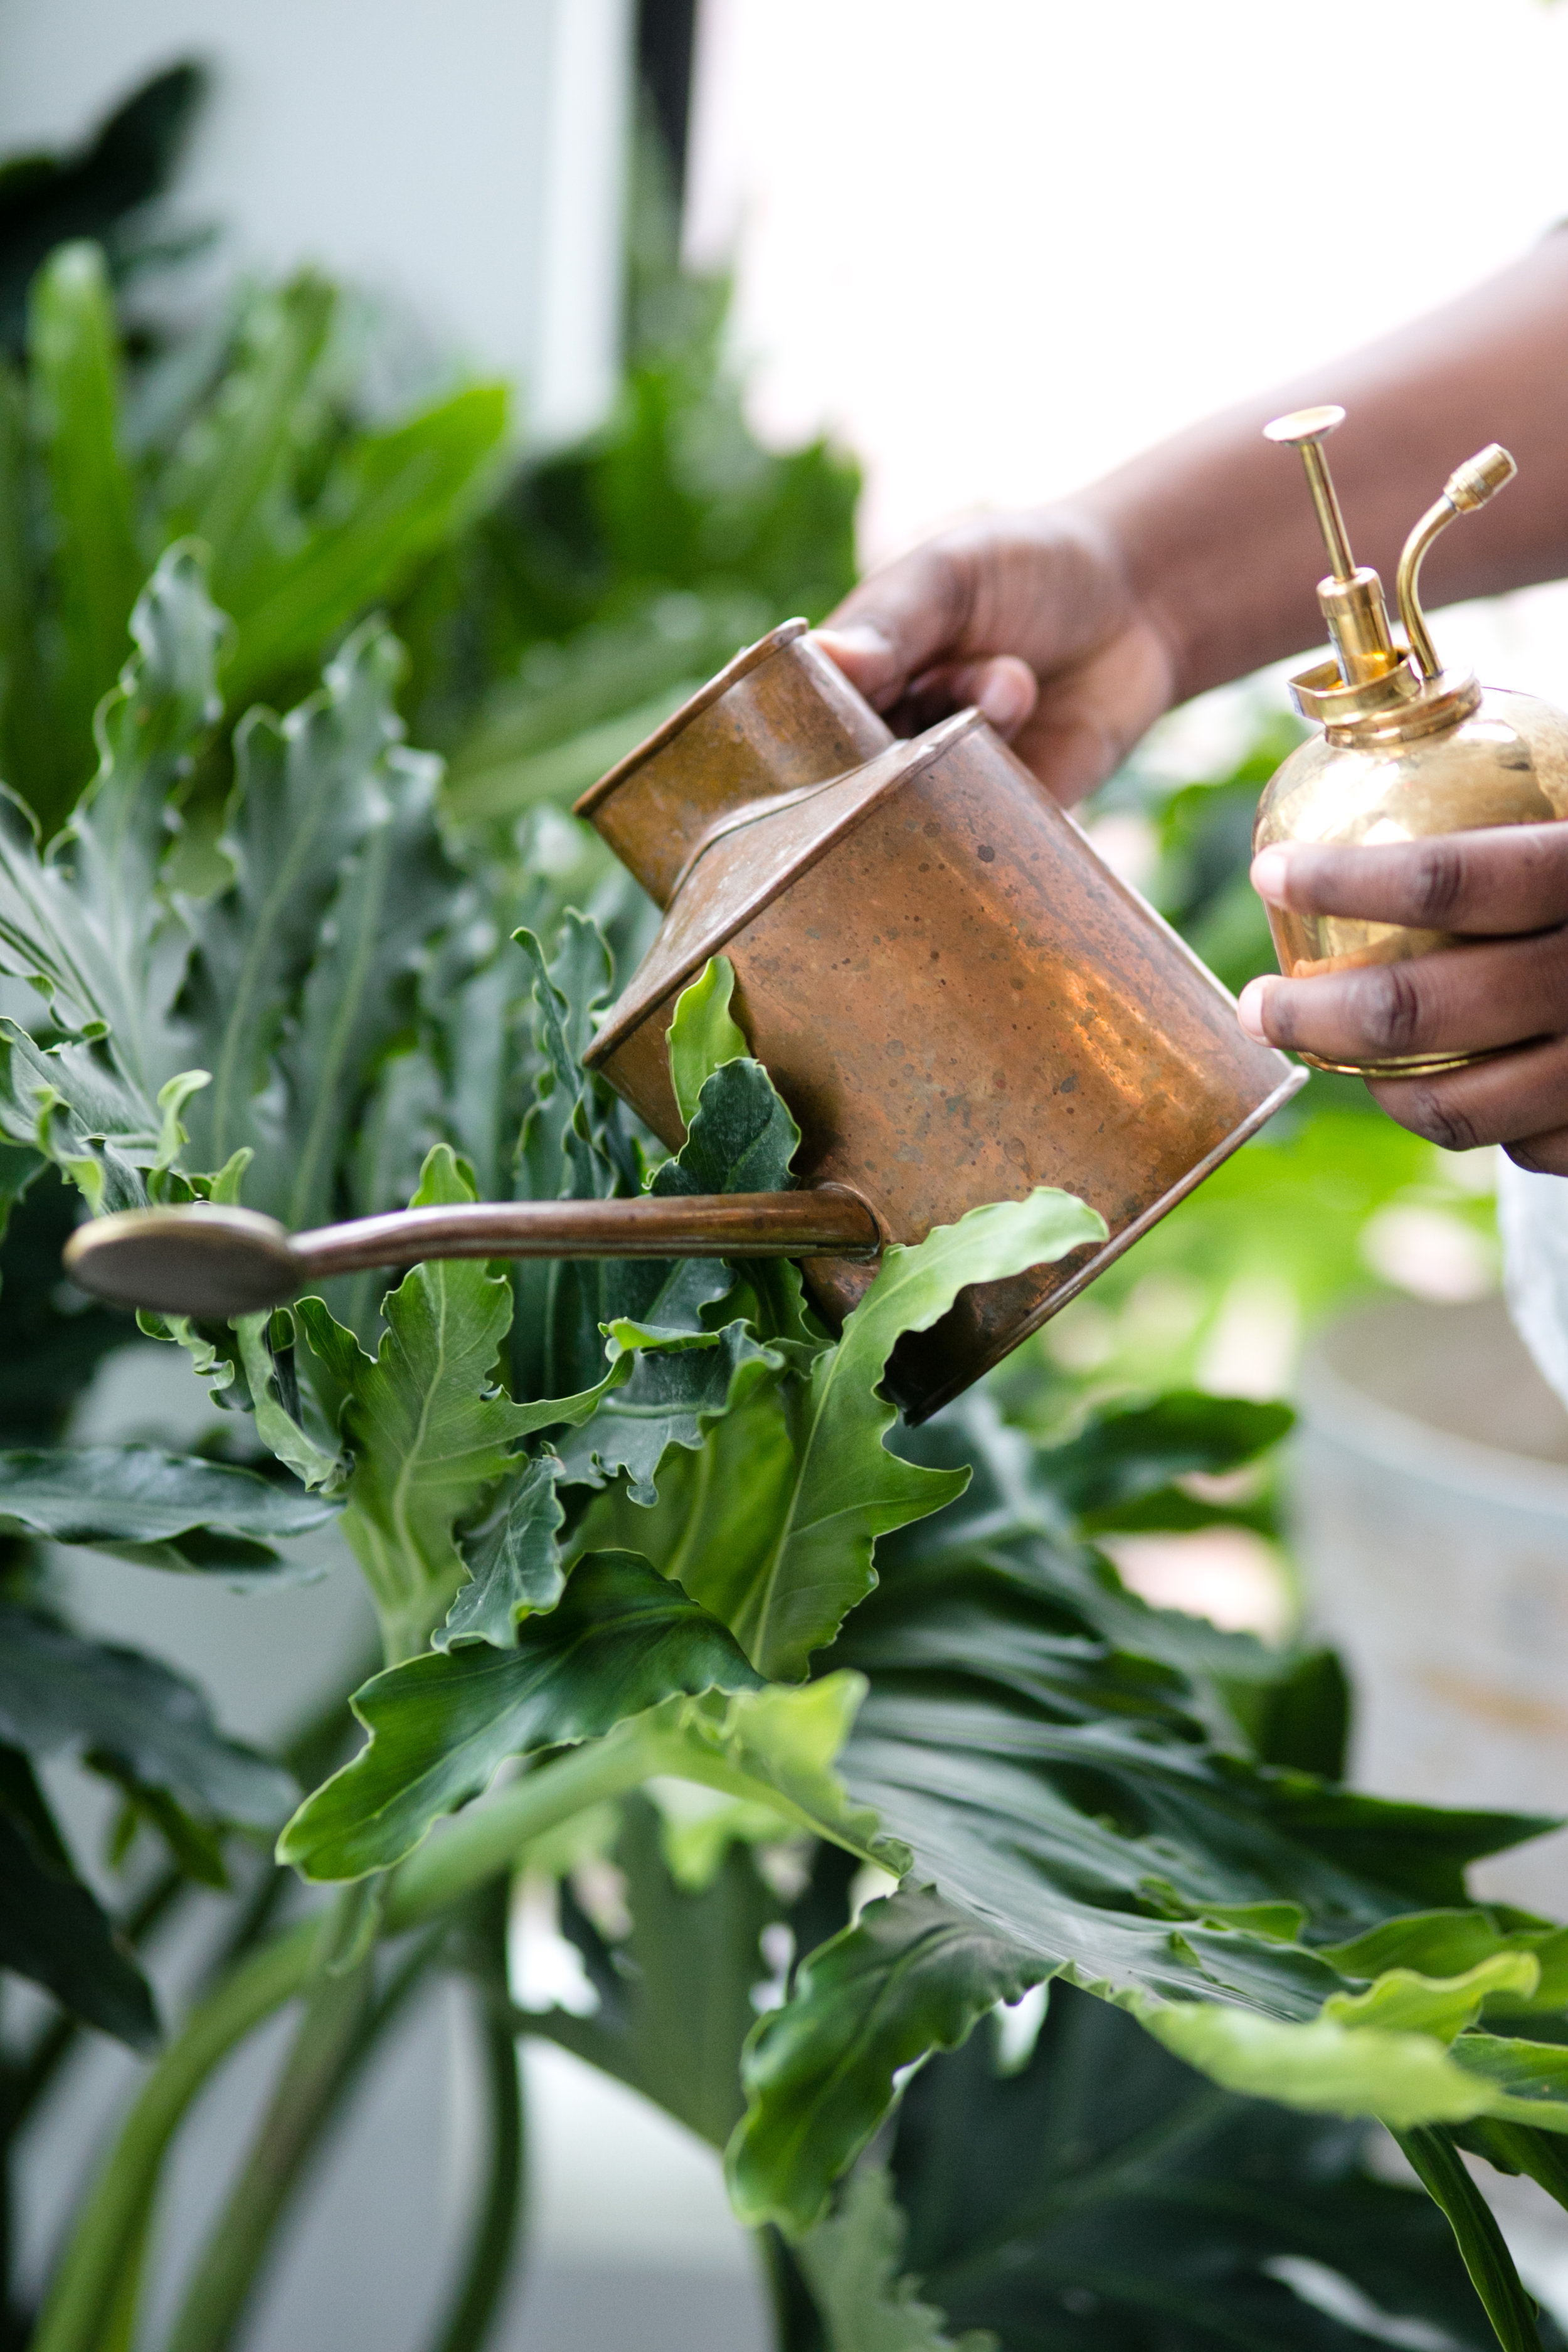 Always, always, always water after repotting. Spring is also good opportunity to restock your plant parent accessories, like watering cans and misters.